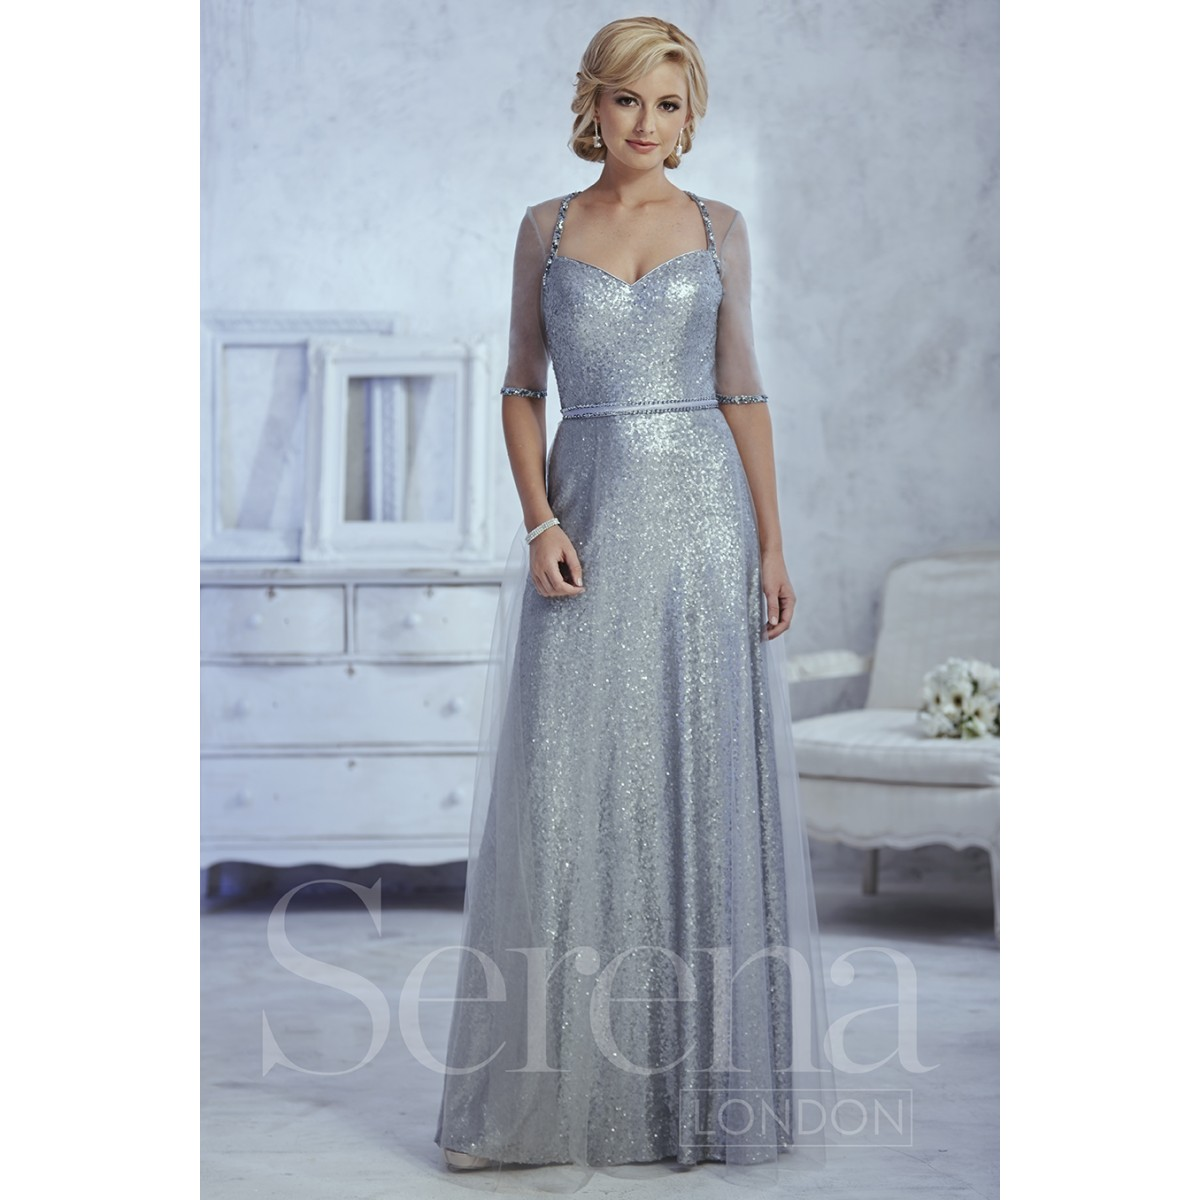 Dorable Lace Mother Of The Bride Dresses Plus Size Image - All ...